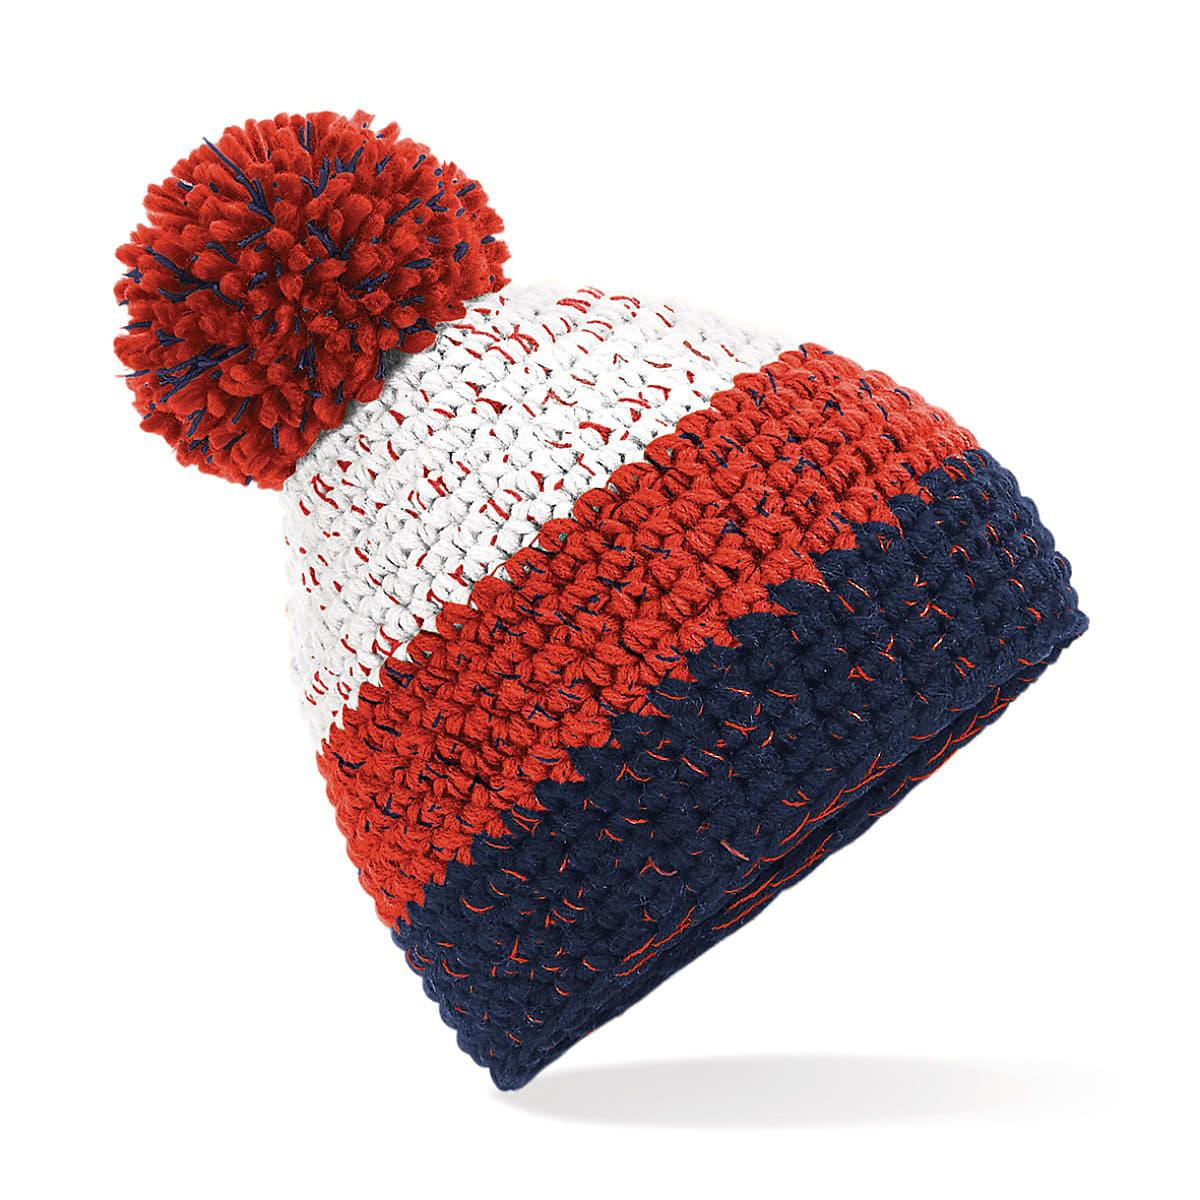 Beechfield Freestyle Beanie Hat in White / Fire Red / Oxford Navy (Product Code: B436)